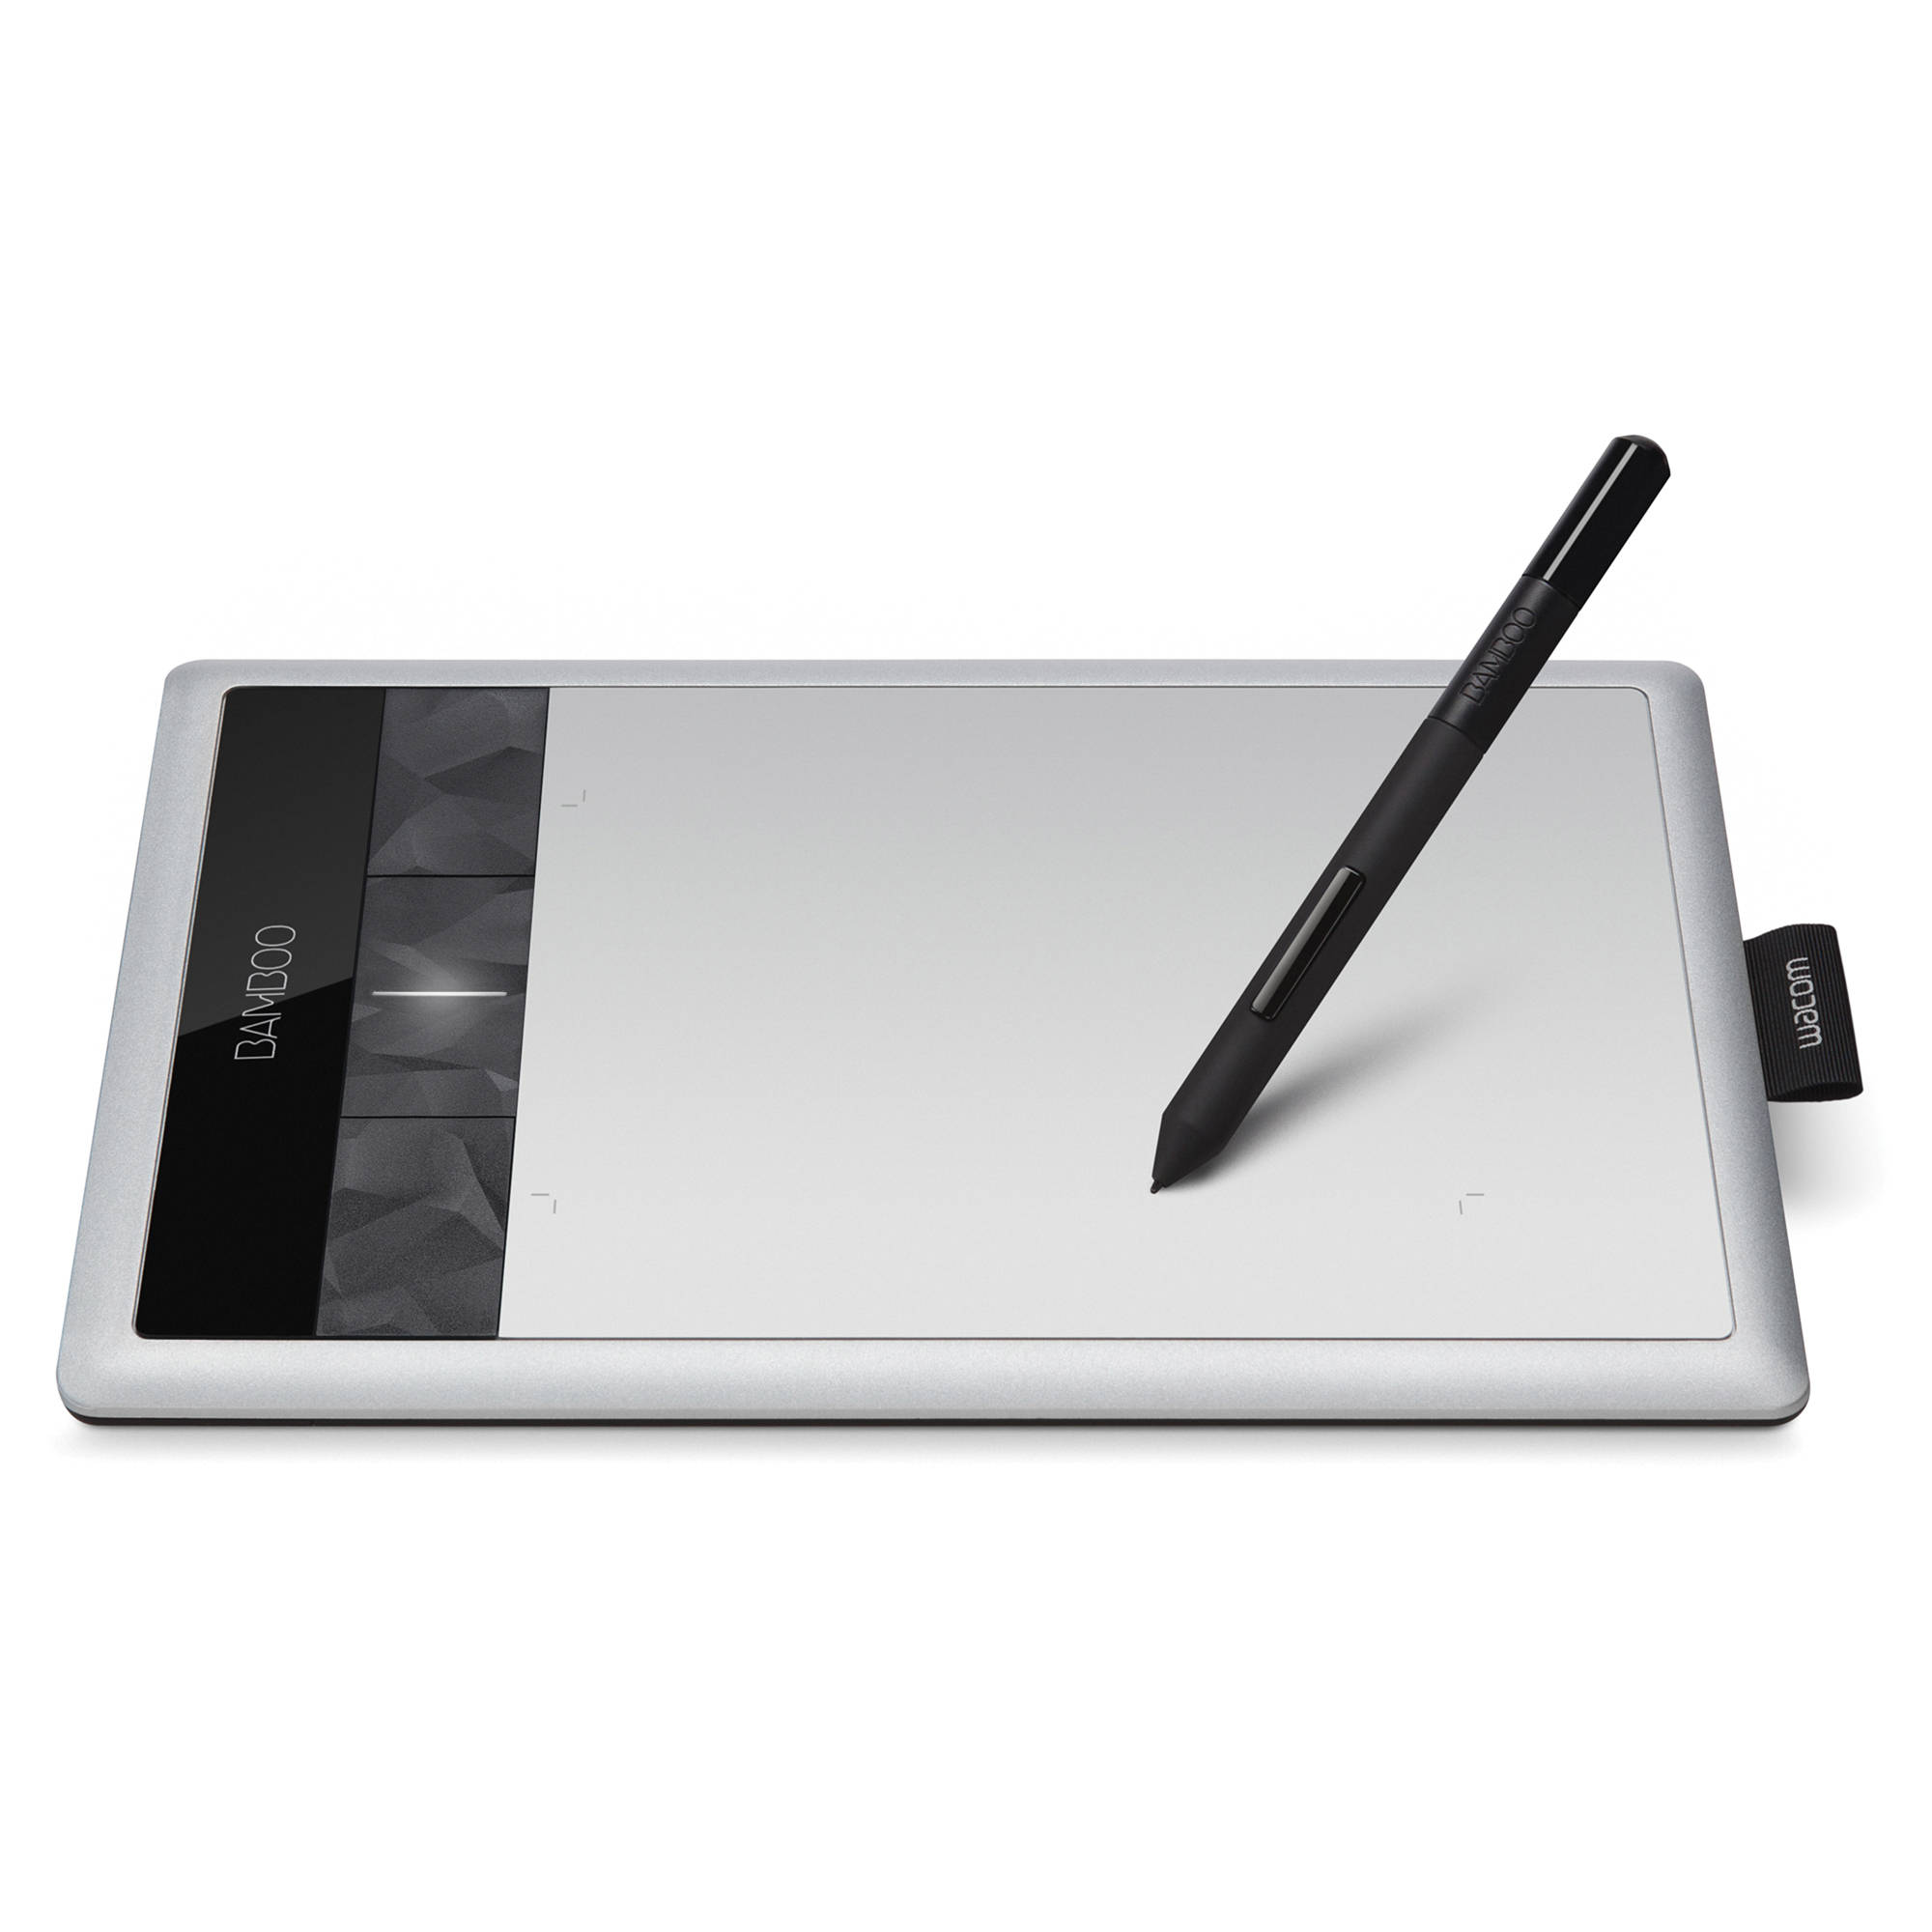 Wacom Bamboo Connect Tablet Driver Windows 7